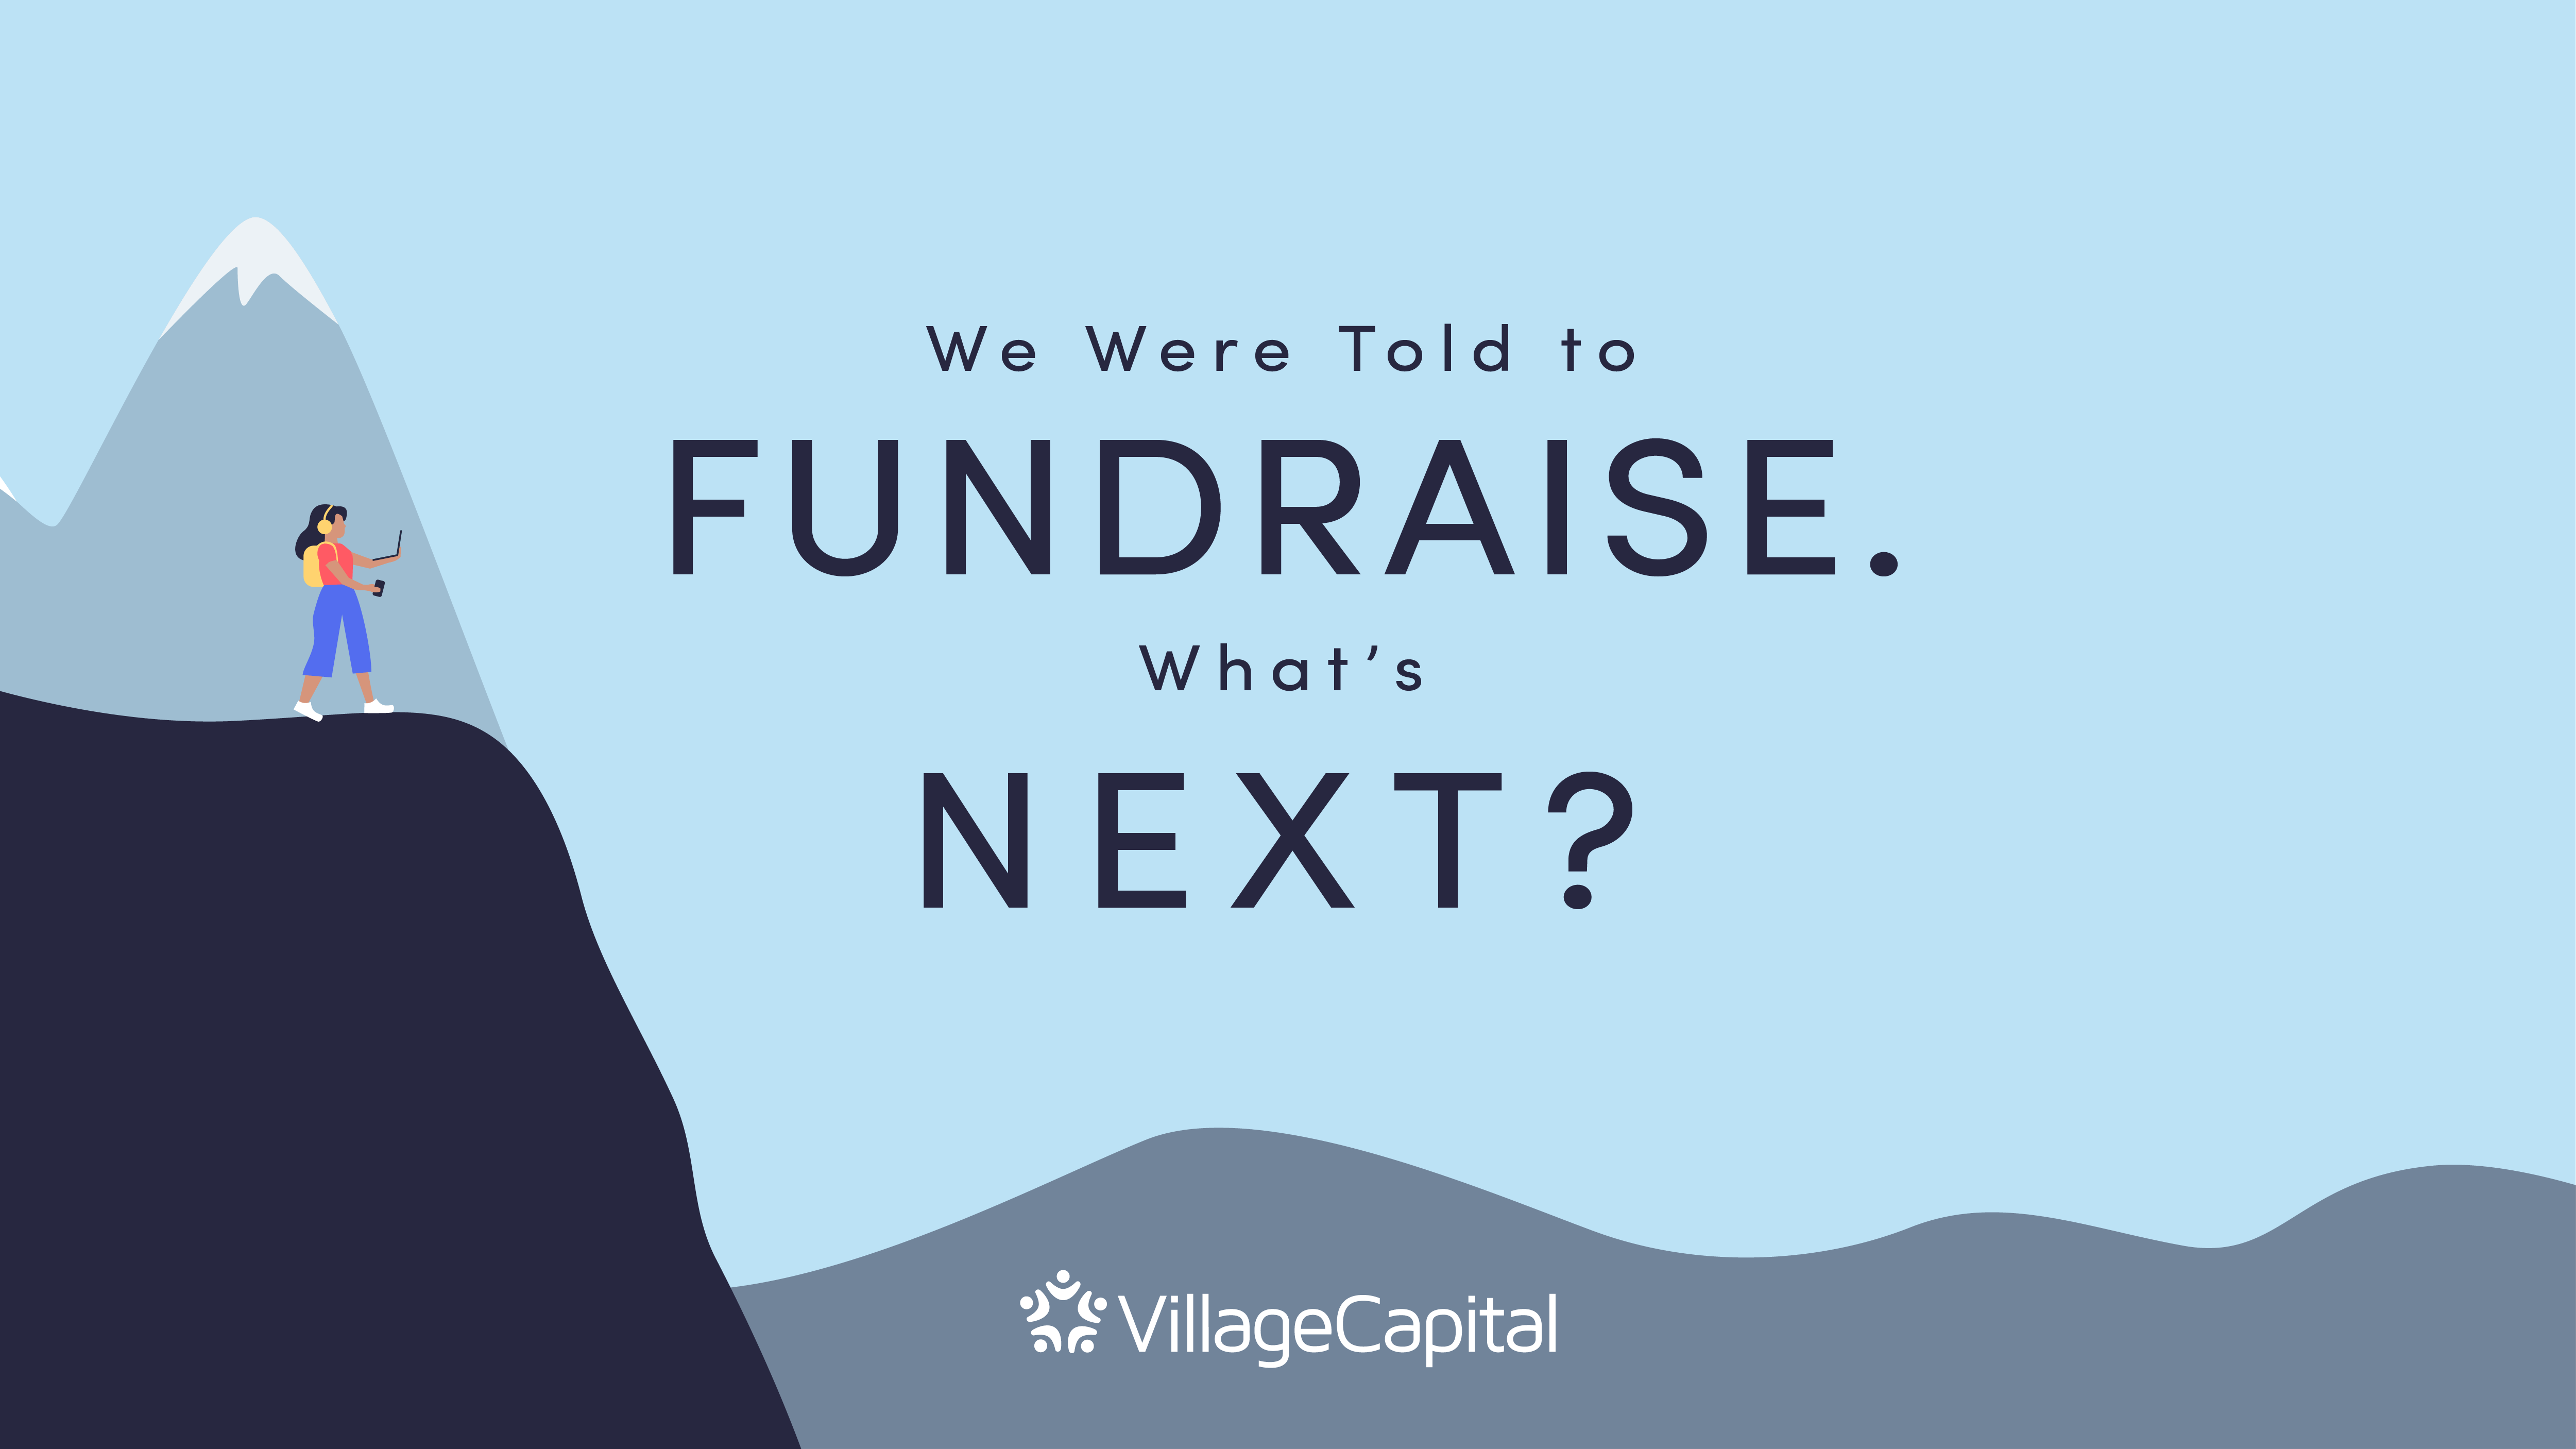 Fundraise VC